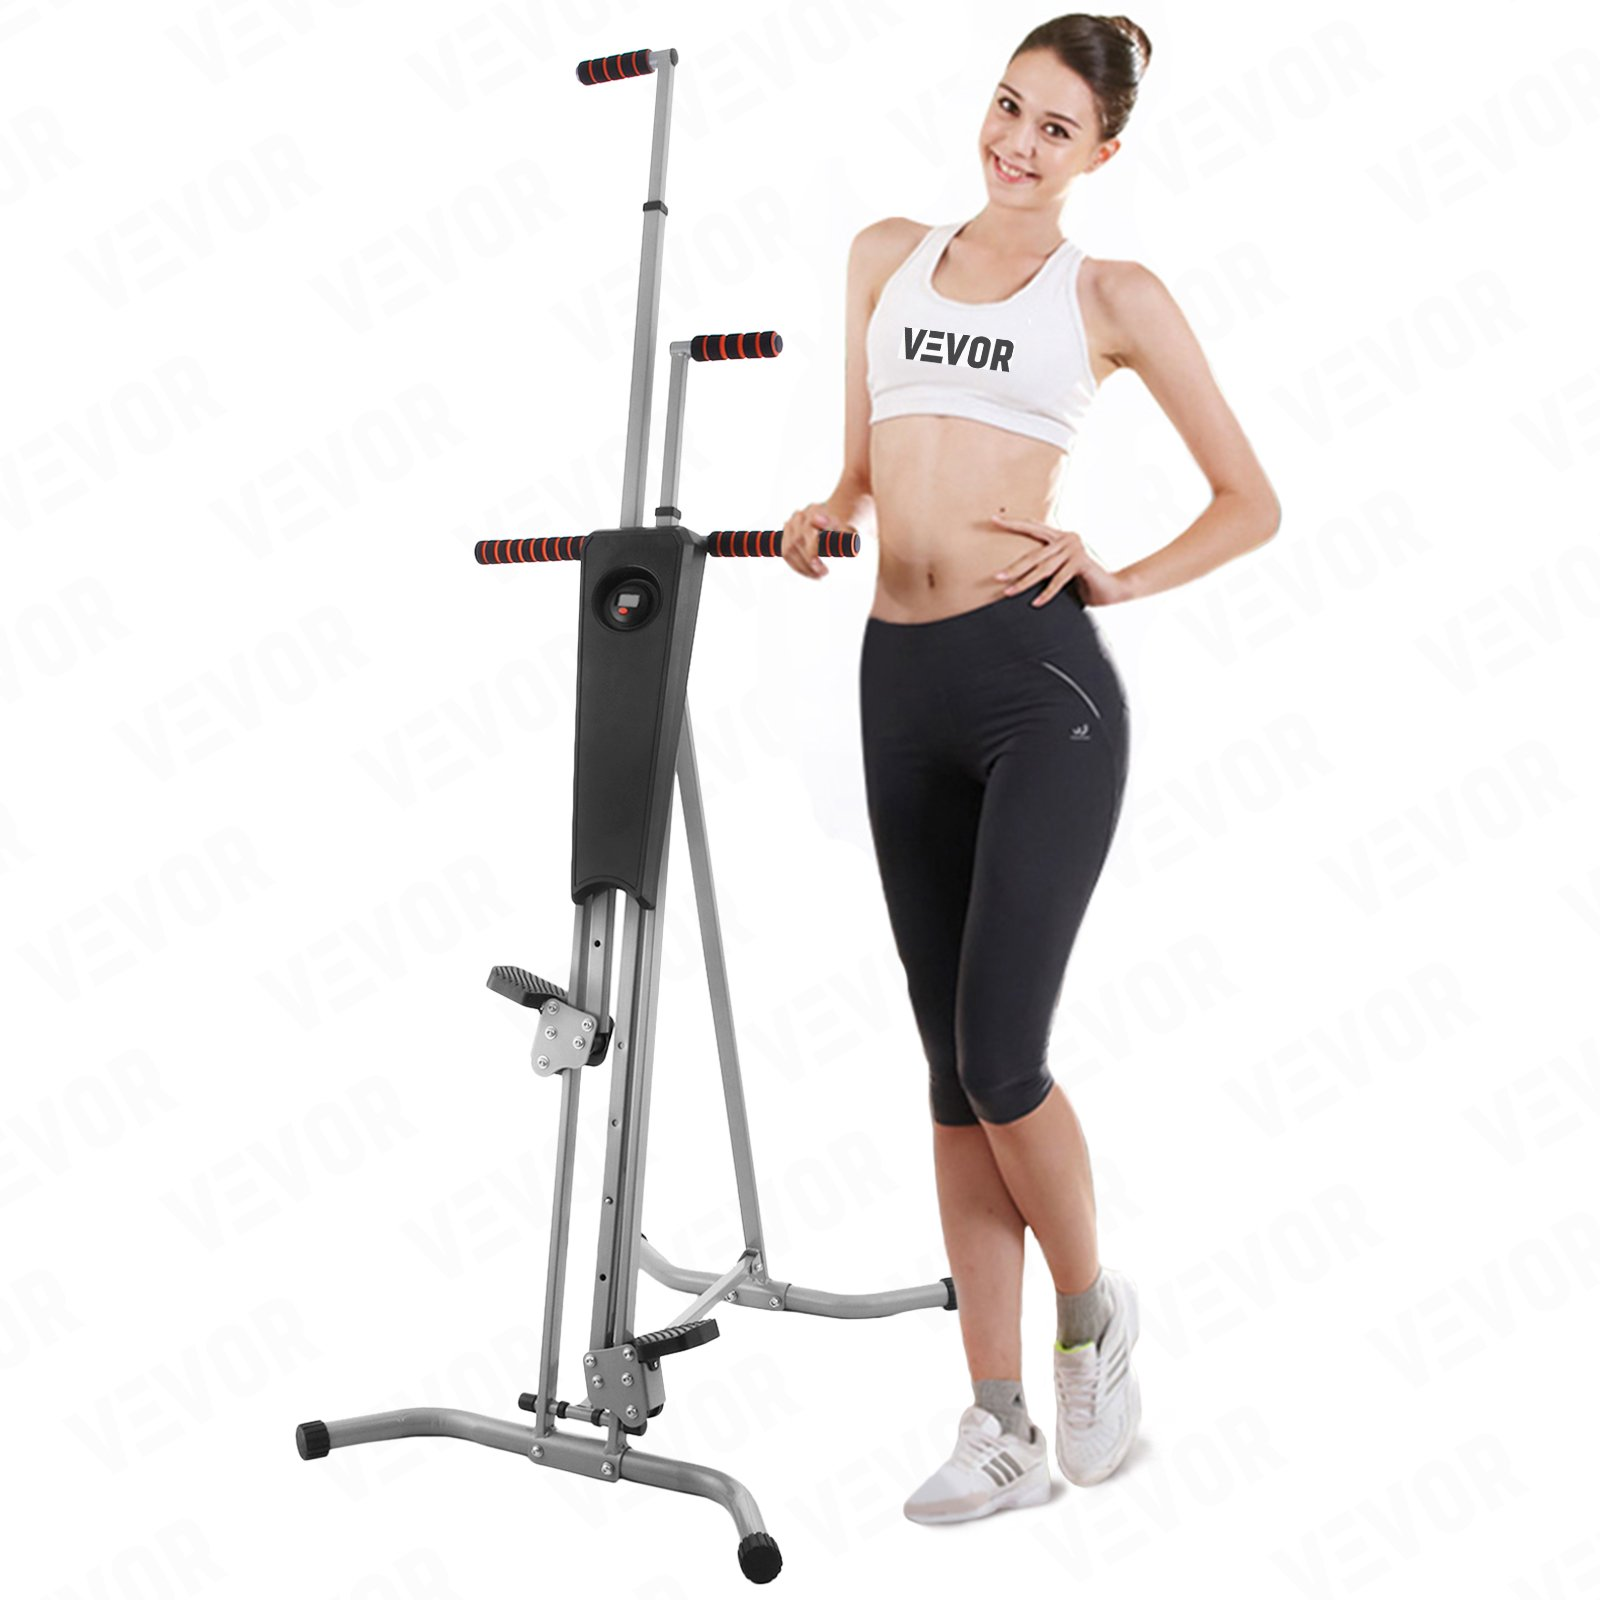 VEVOR Vertical Climber Machine 440LBS Vertical Climber Fitness Exercise Stepper with Monitor Climbing Machine Workout Fitness Gym